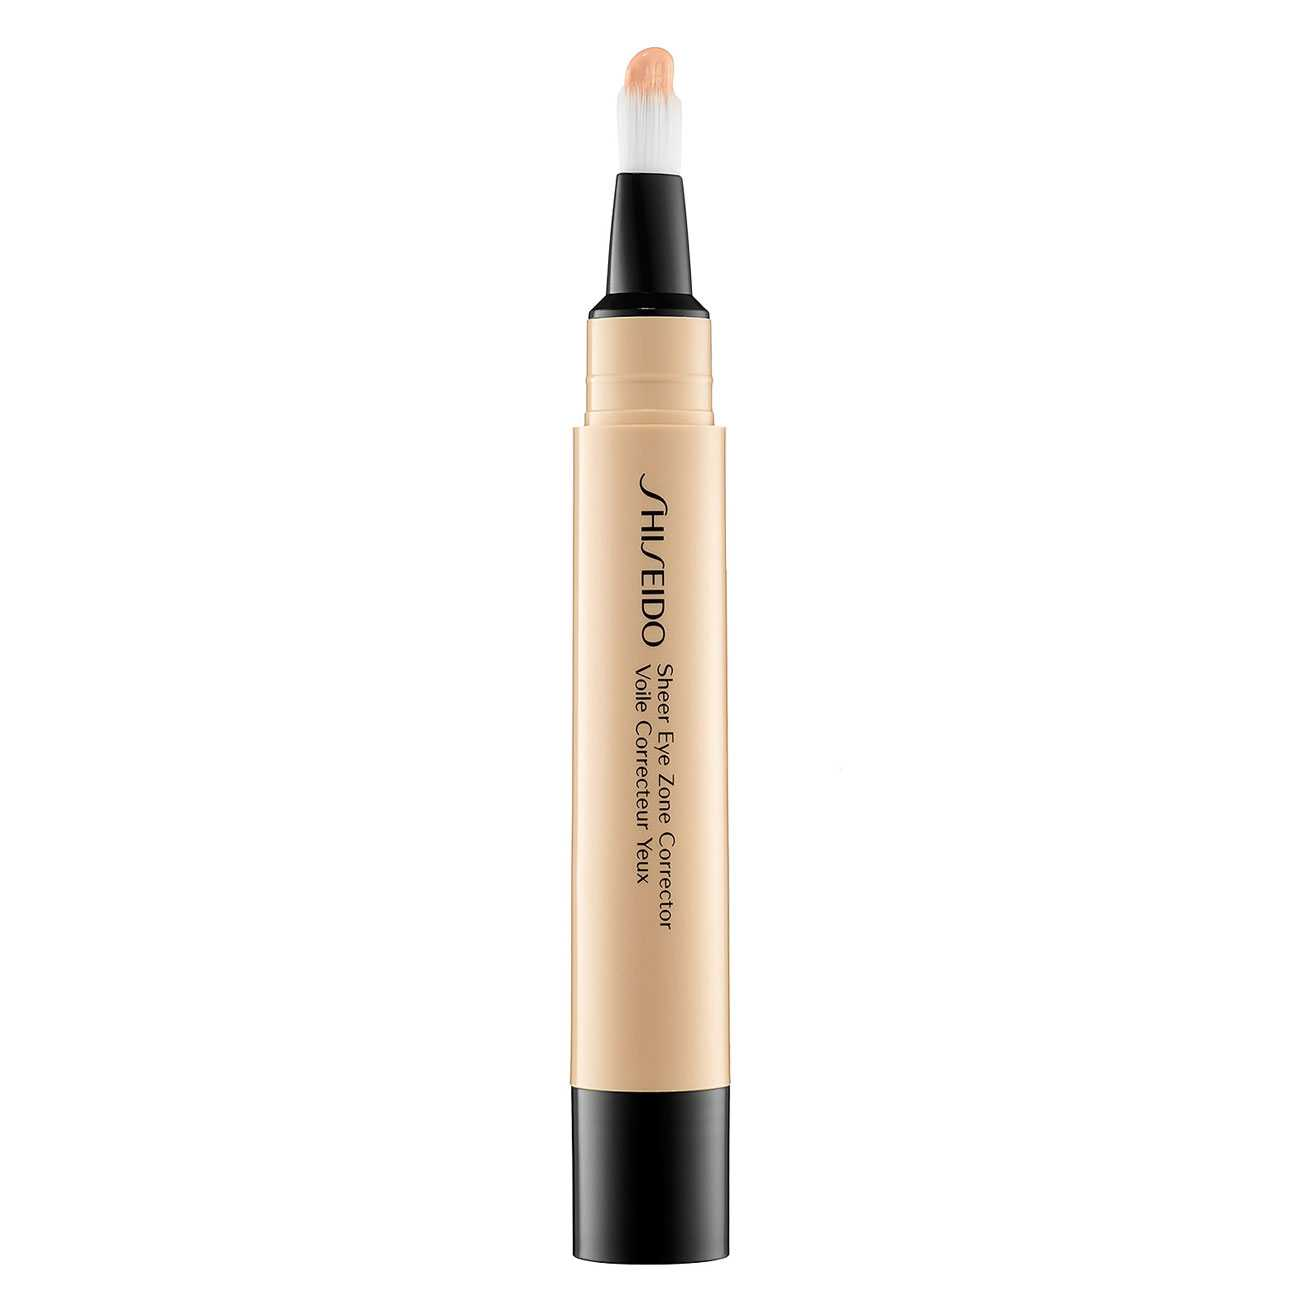 Sheer Eye Zone Corrector 3.8 Ml Natural 103 Shiseido imagine 2021 bestvalue.eu